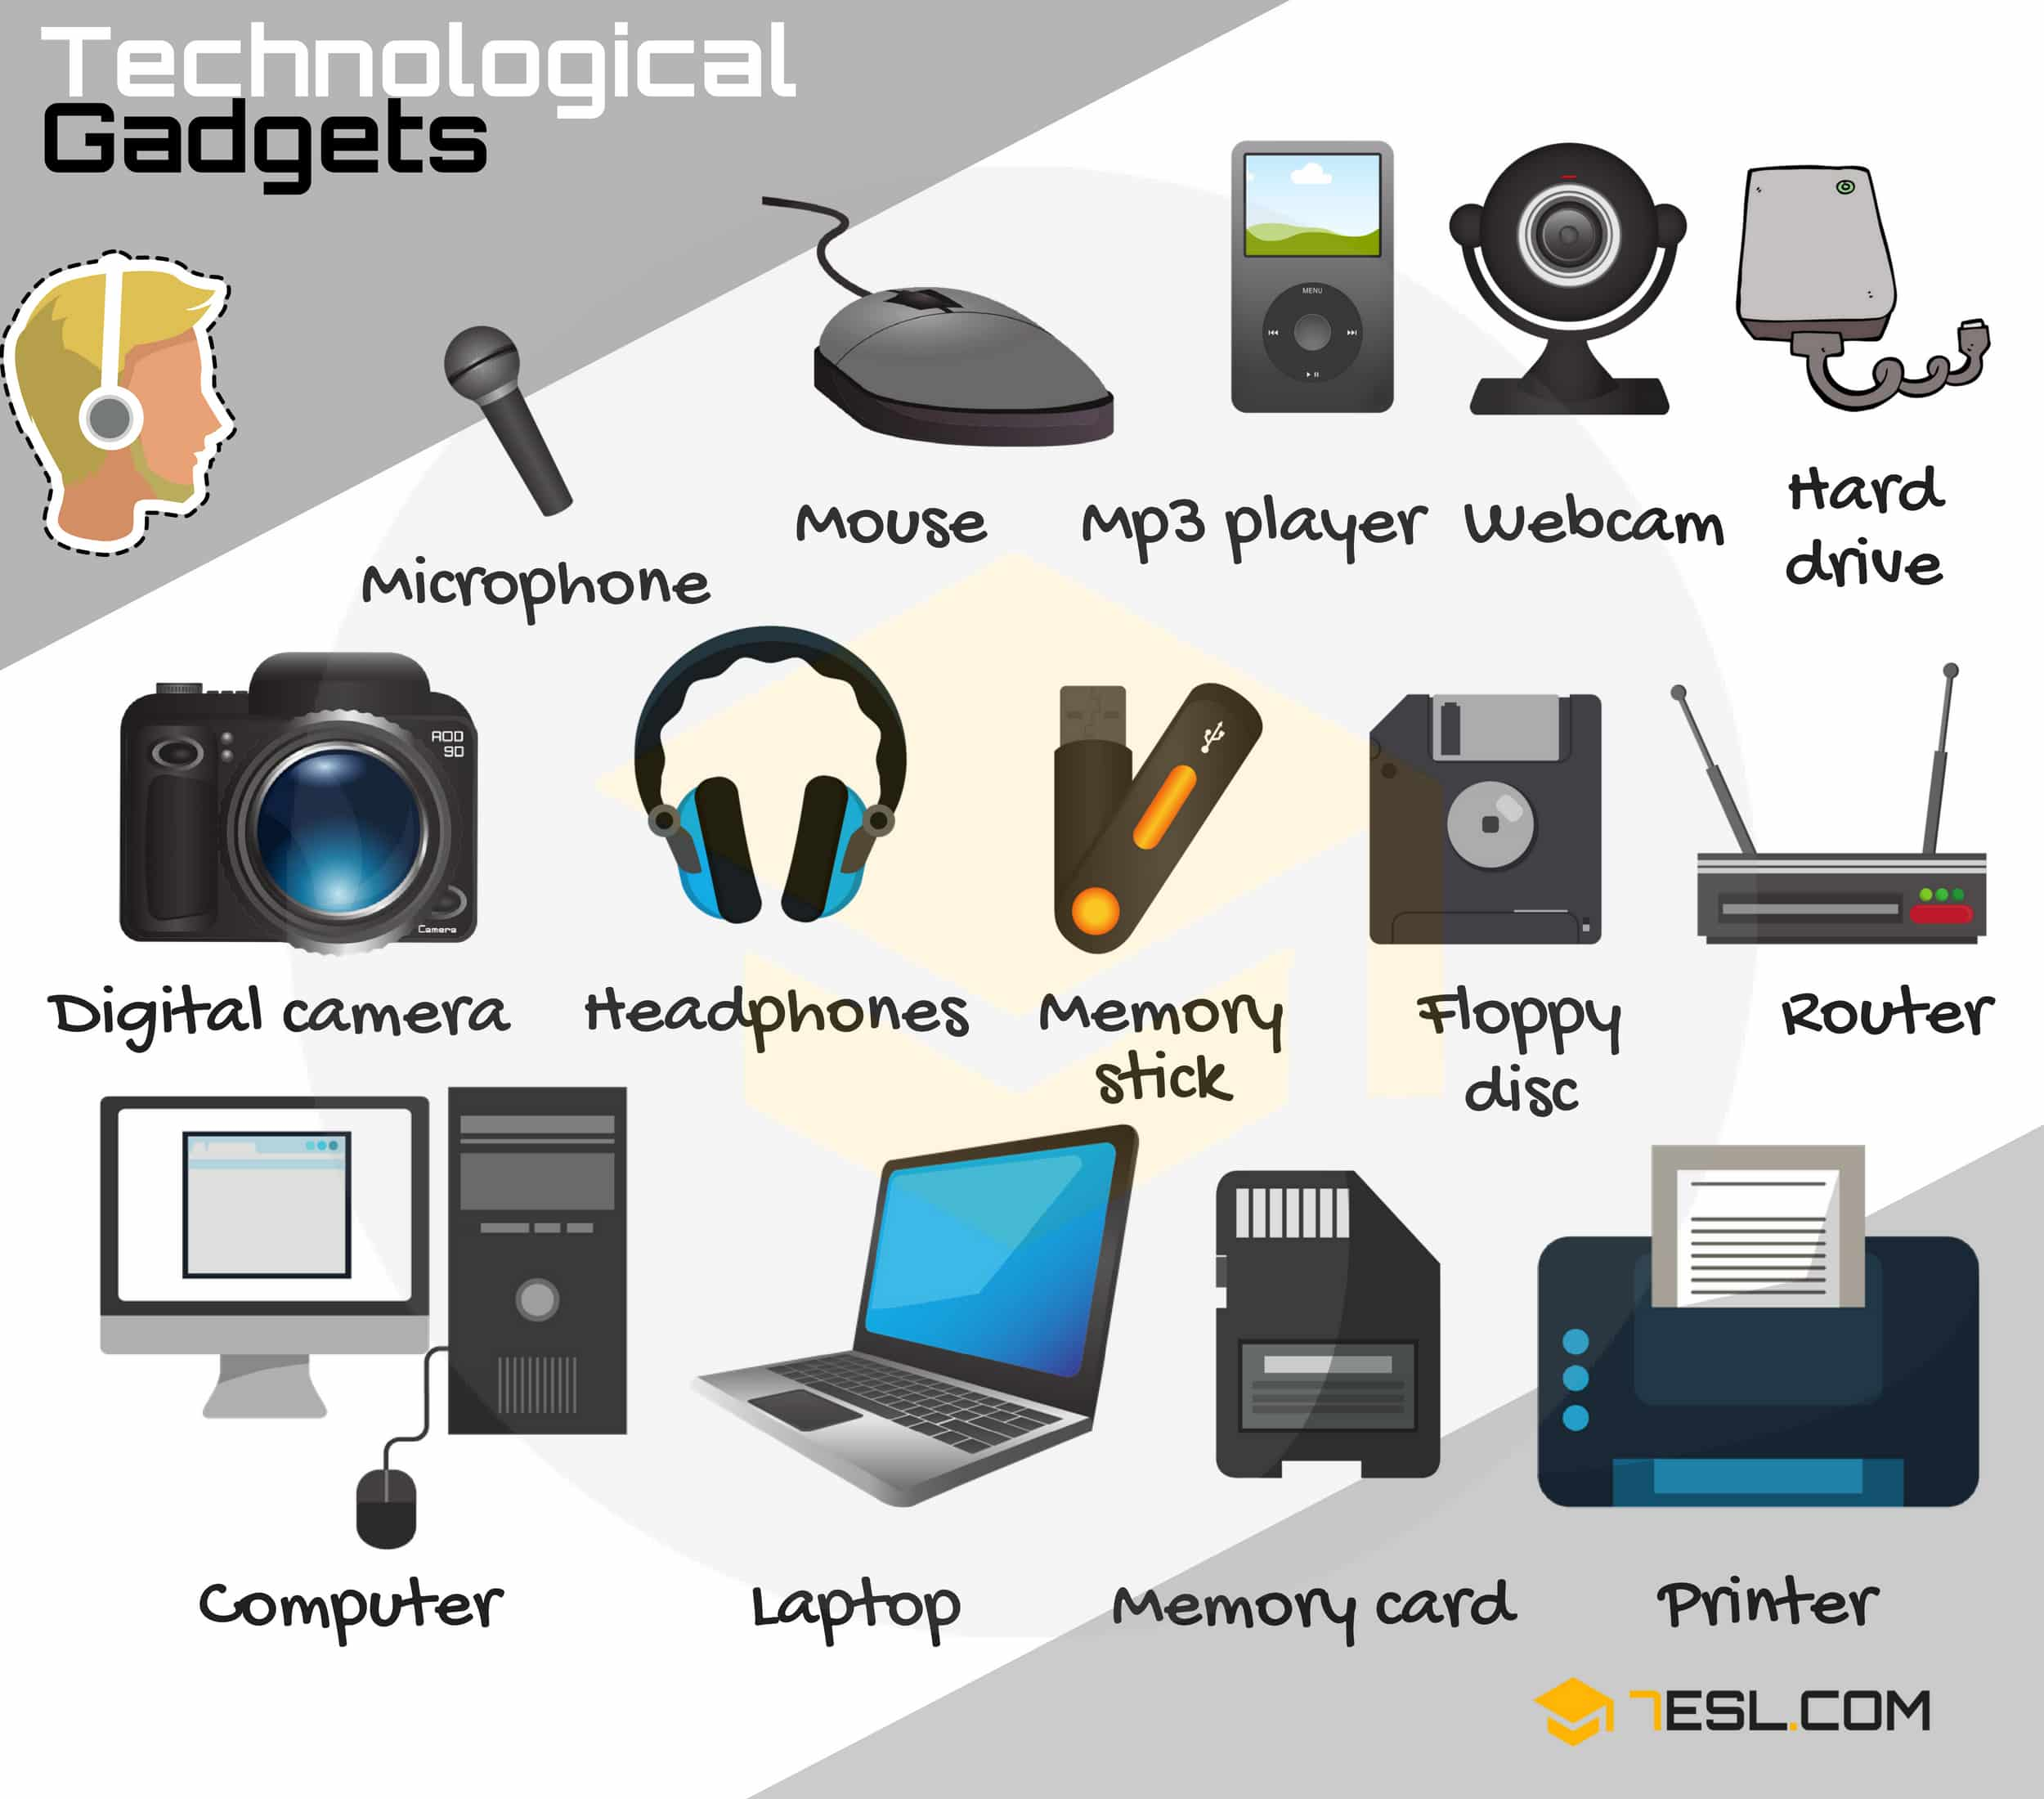 Technology Vocabulary List Of Tech Gadgets With Pictures